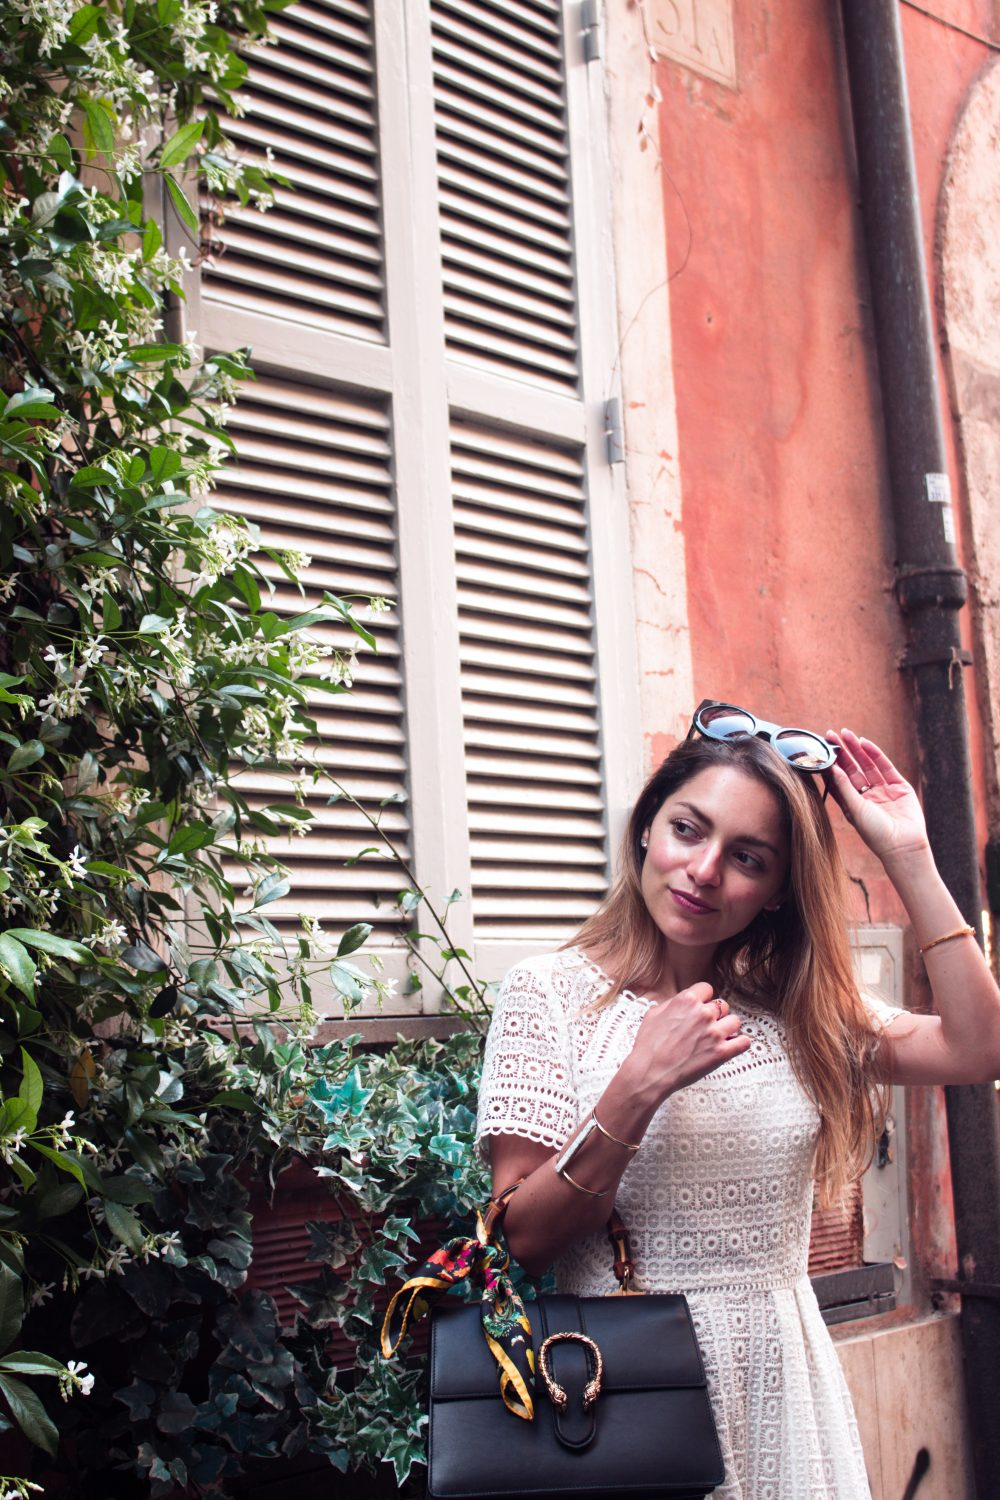 Whitney's Wonderland UK Top Luxury Fashion Blogger wears Boden white lace midi dress, Wildfox Couture granny sunglasses, and Gucci dionysus bag in Rome